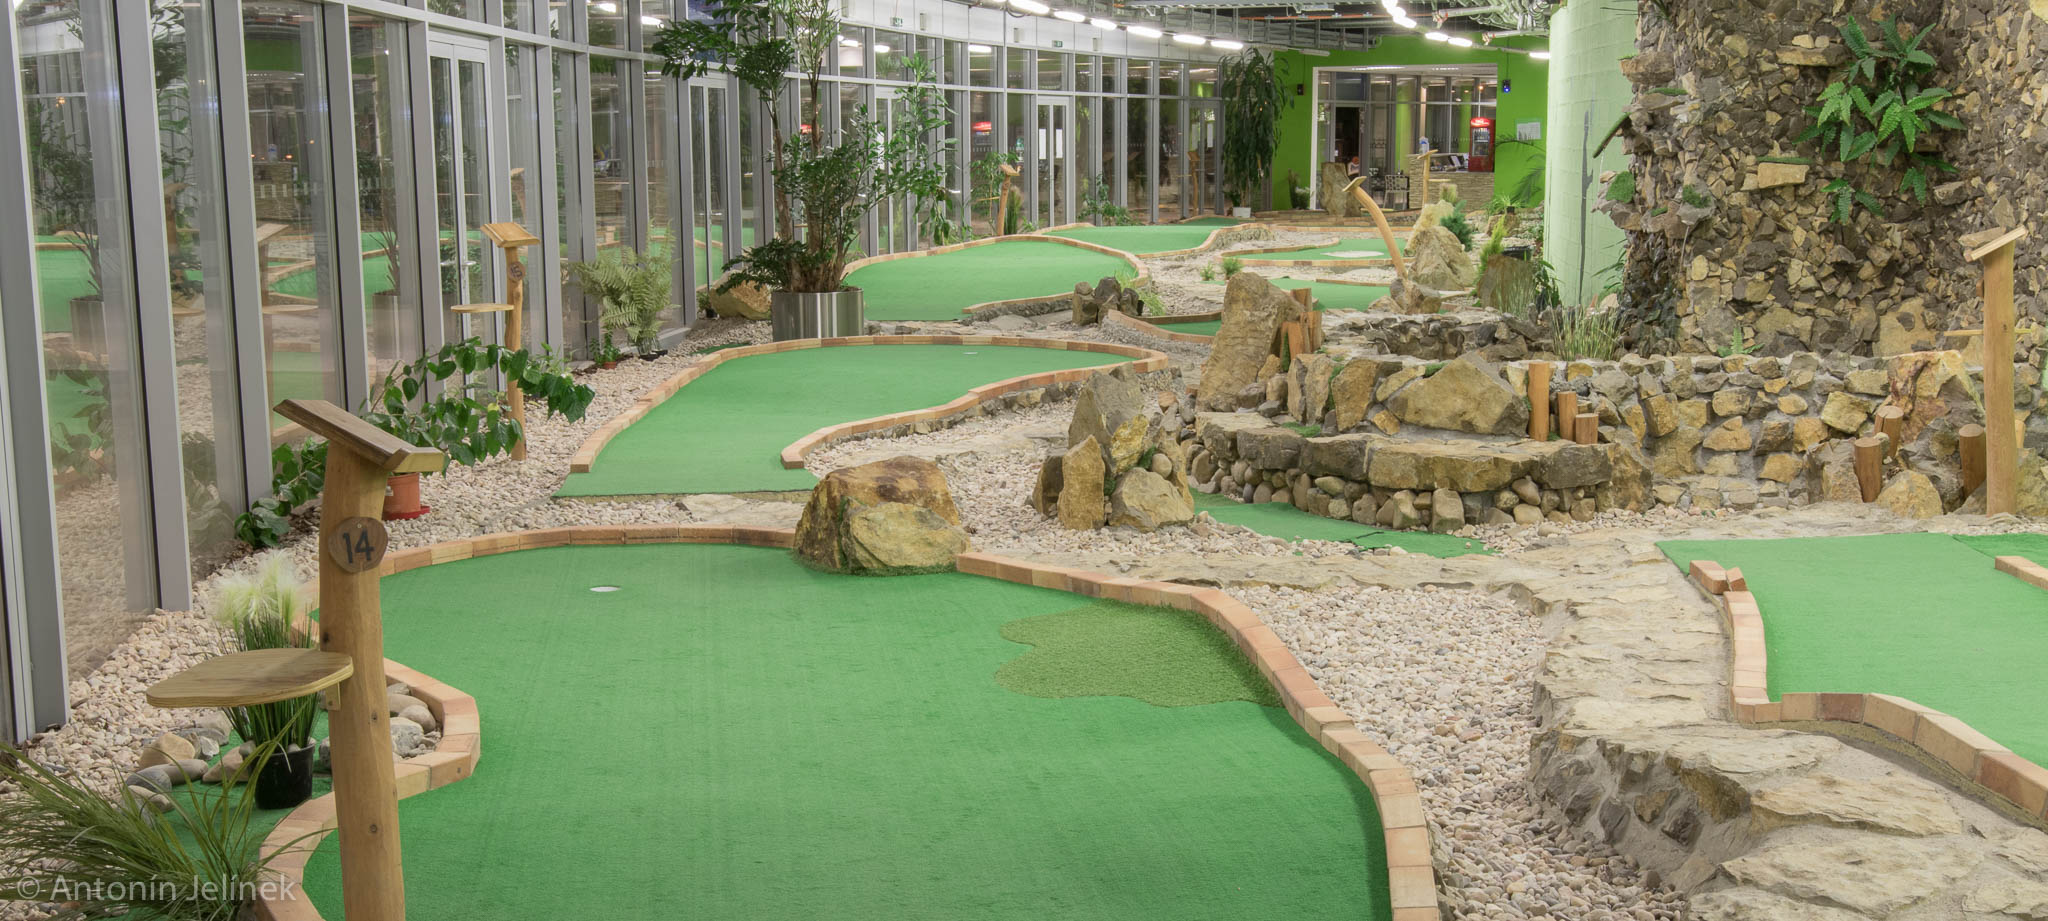 adventure-minigolf-5